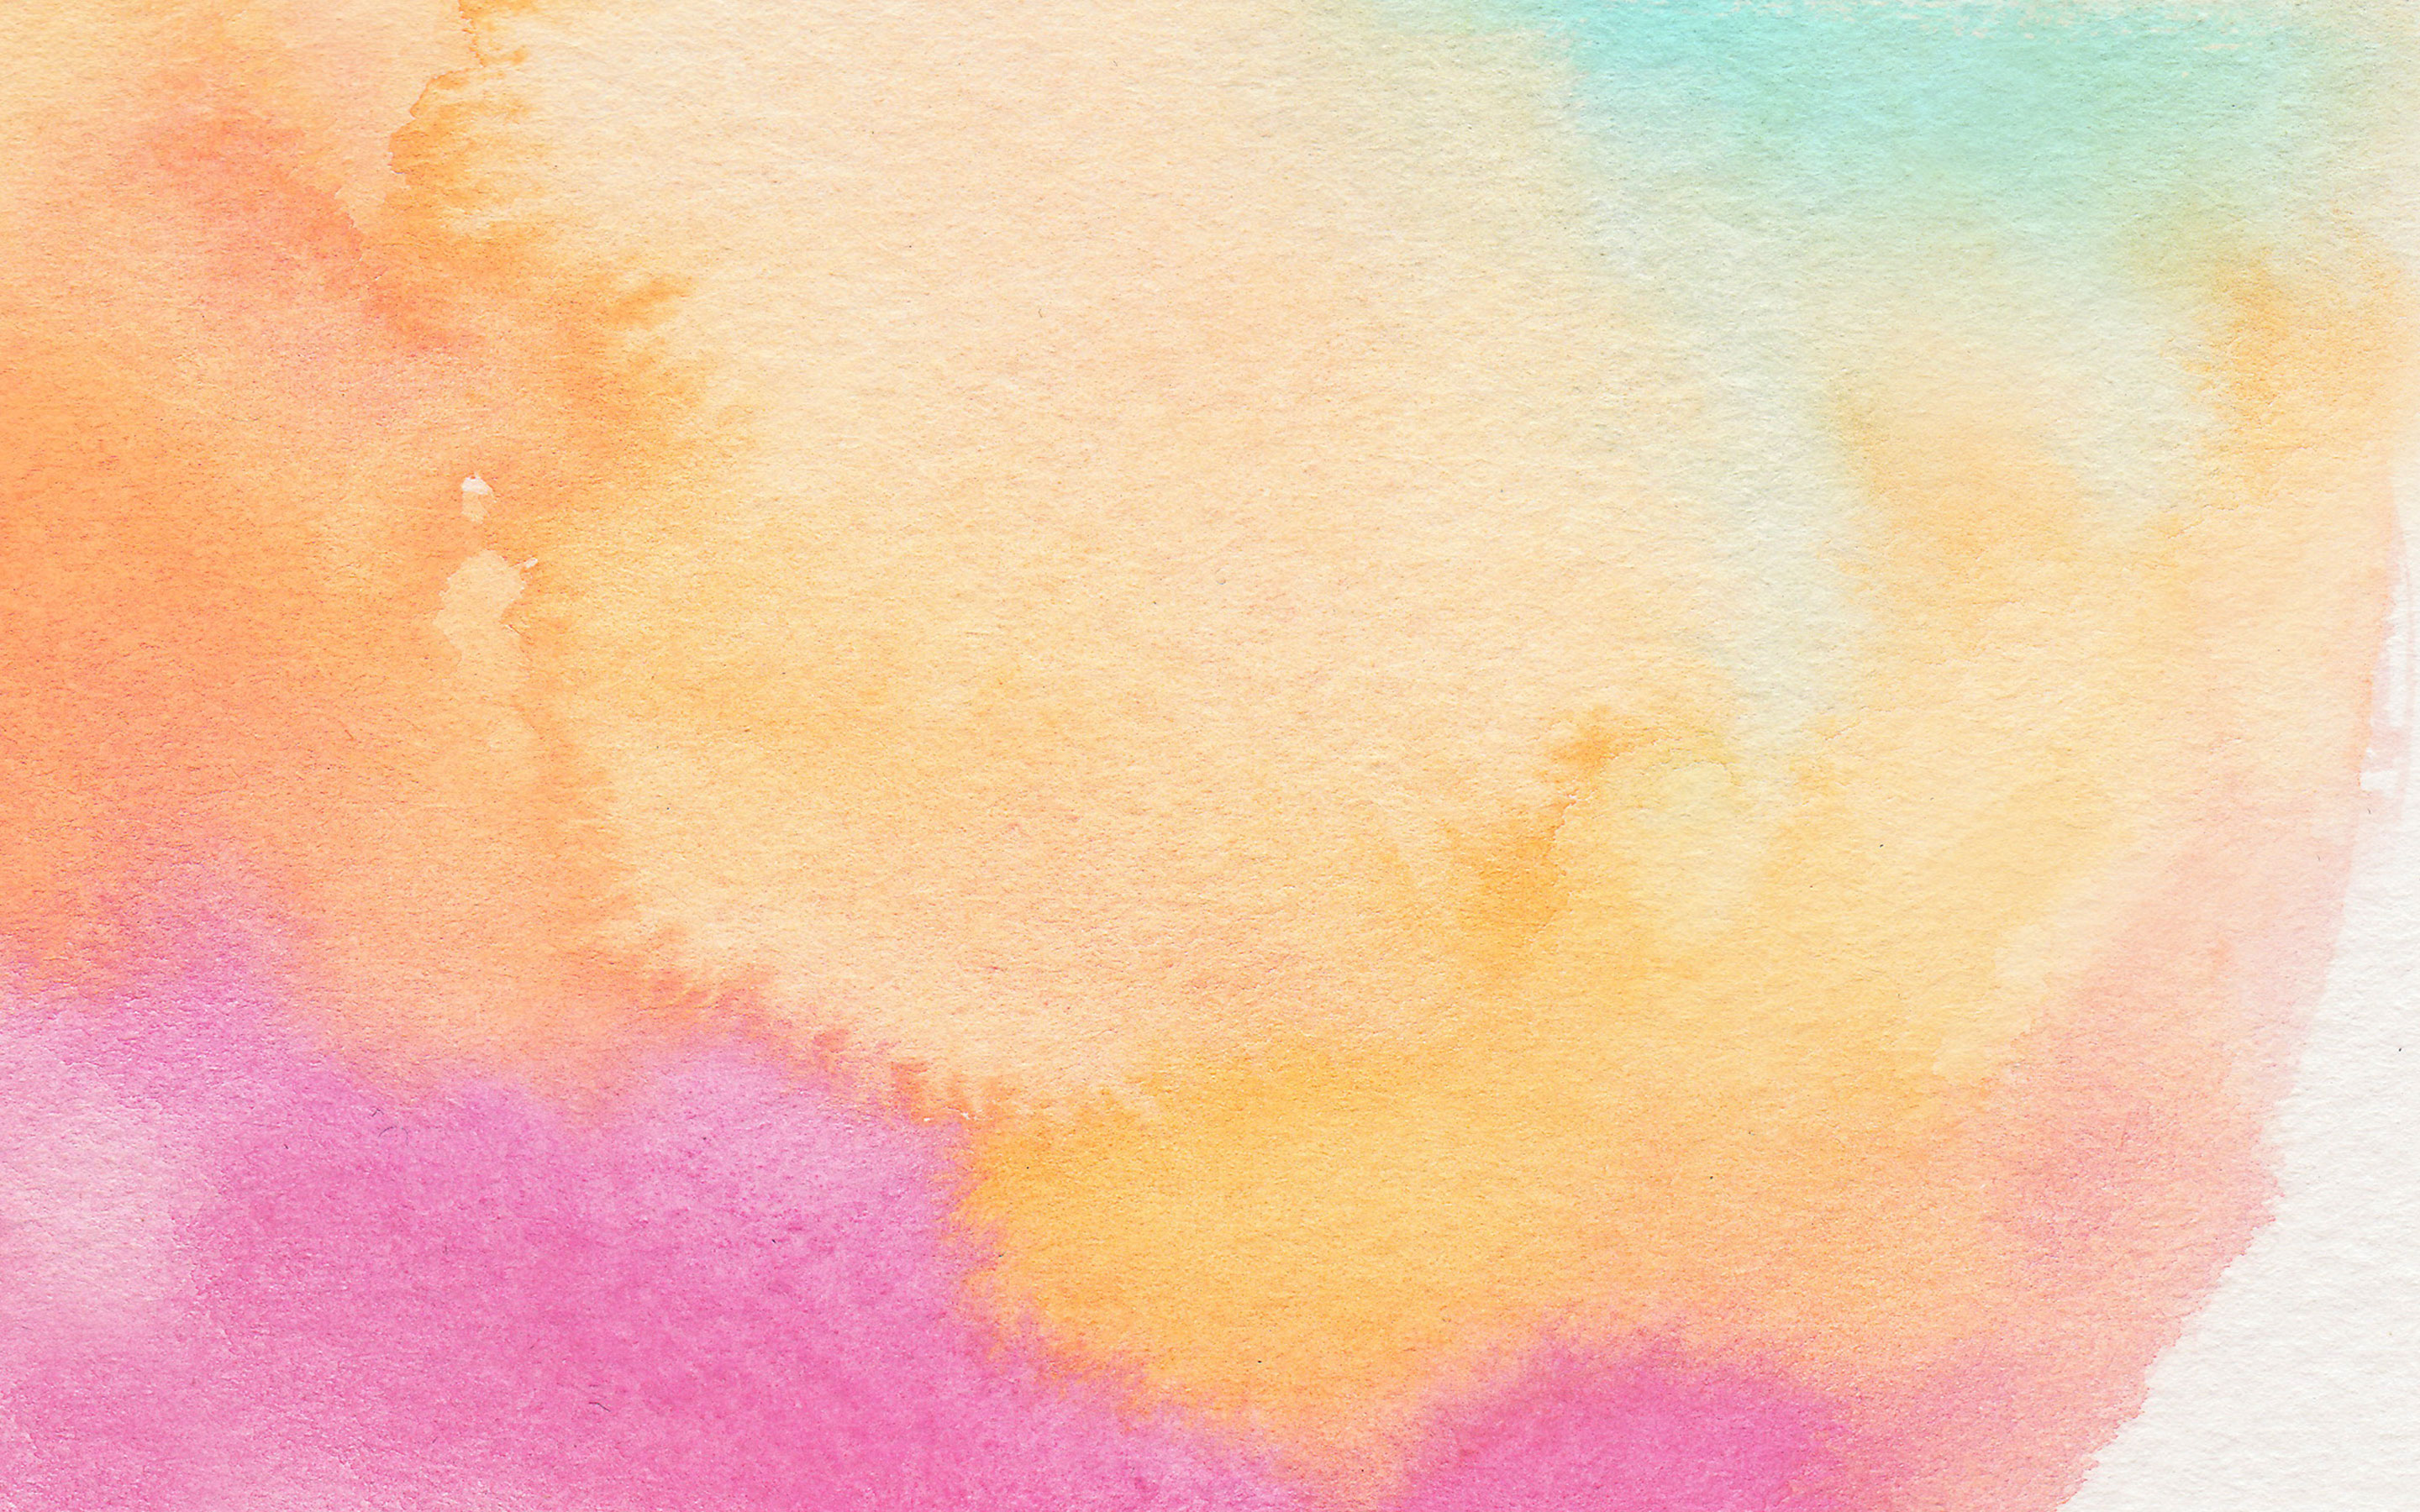 Watercolors Wallpaper